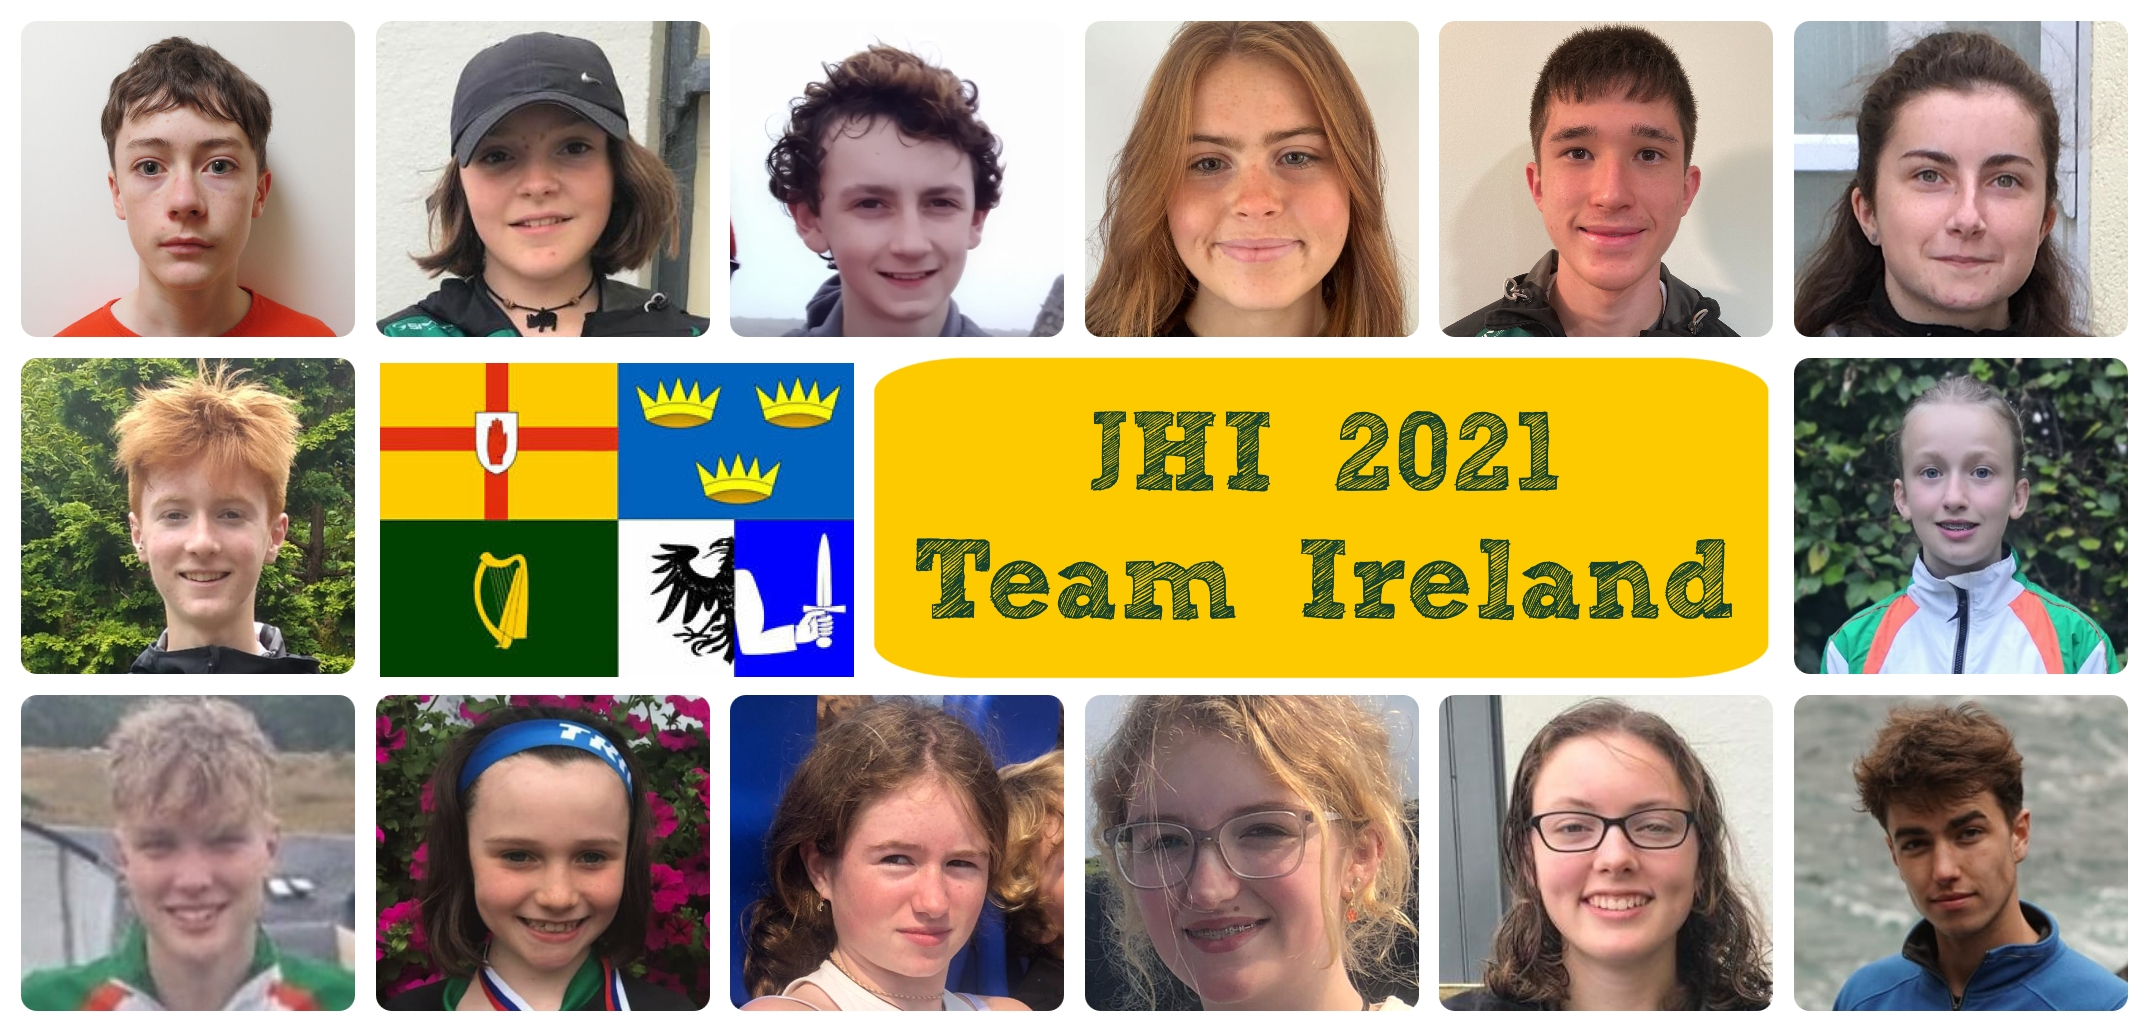 Some of the members of the team for JHI 2021